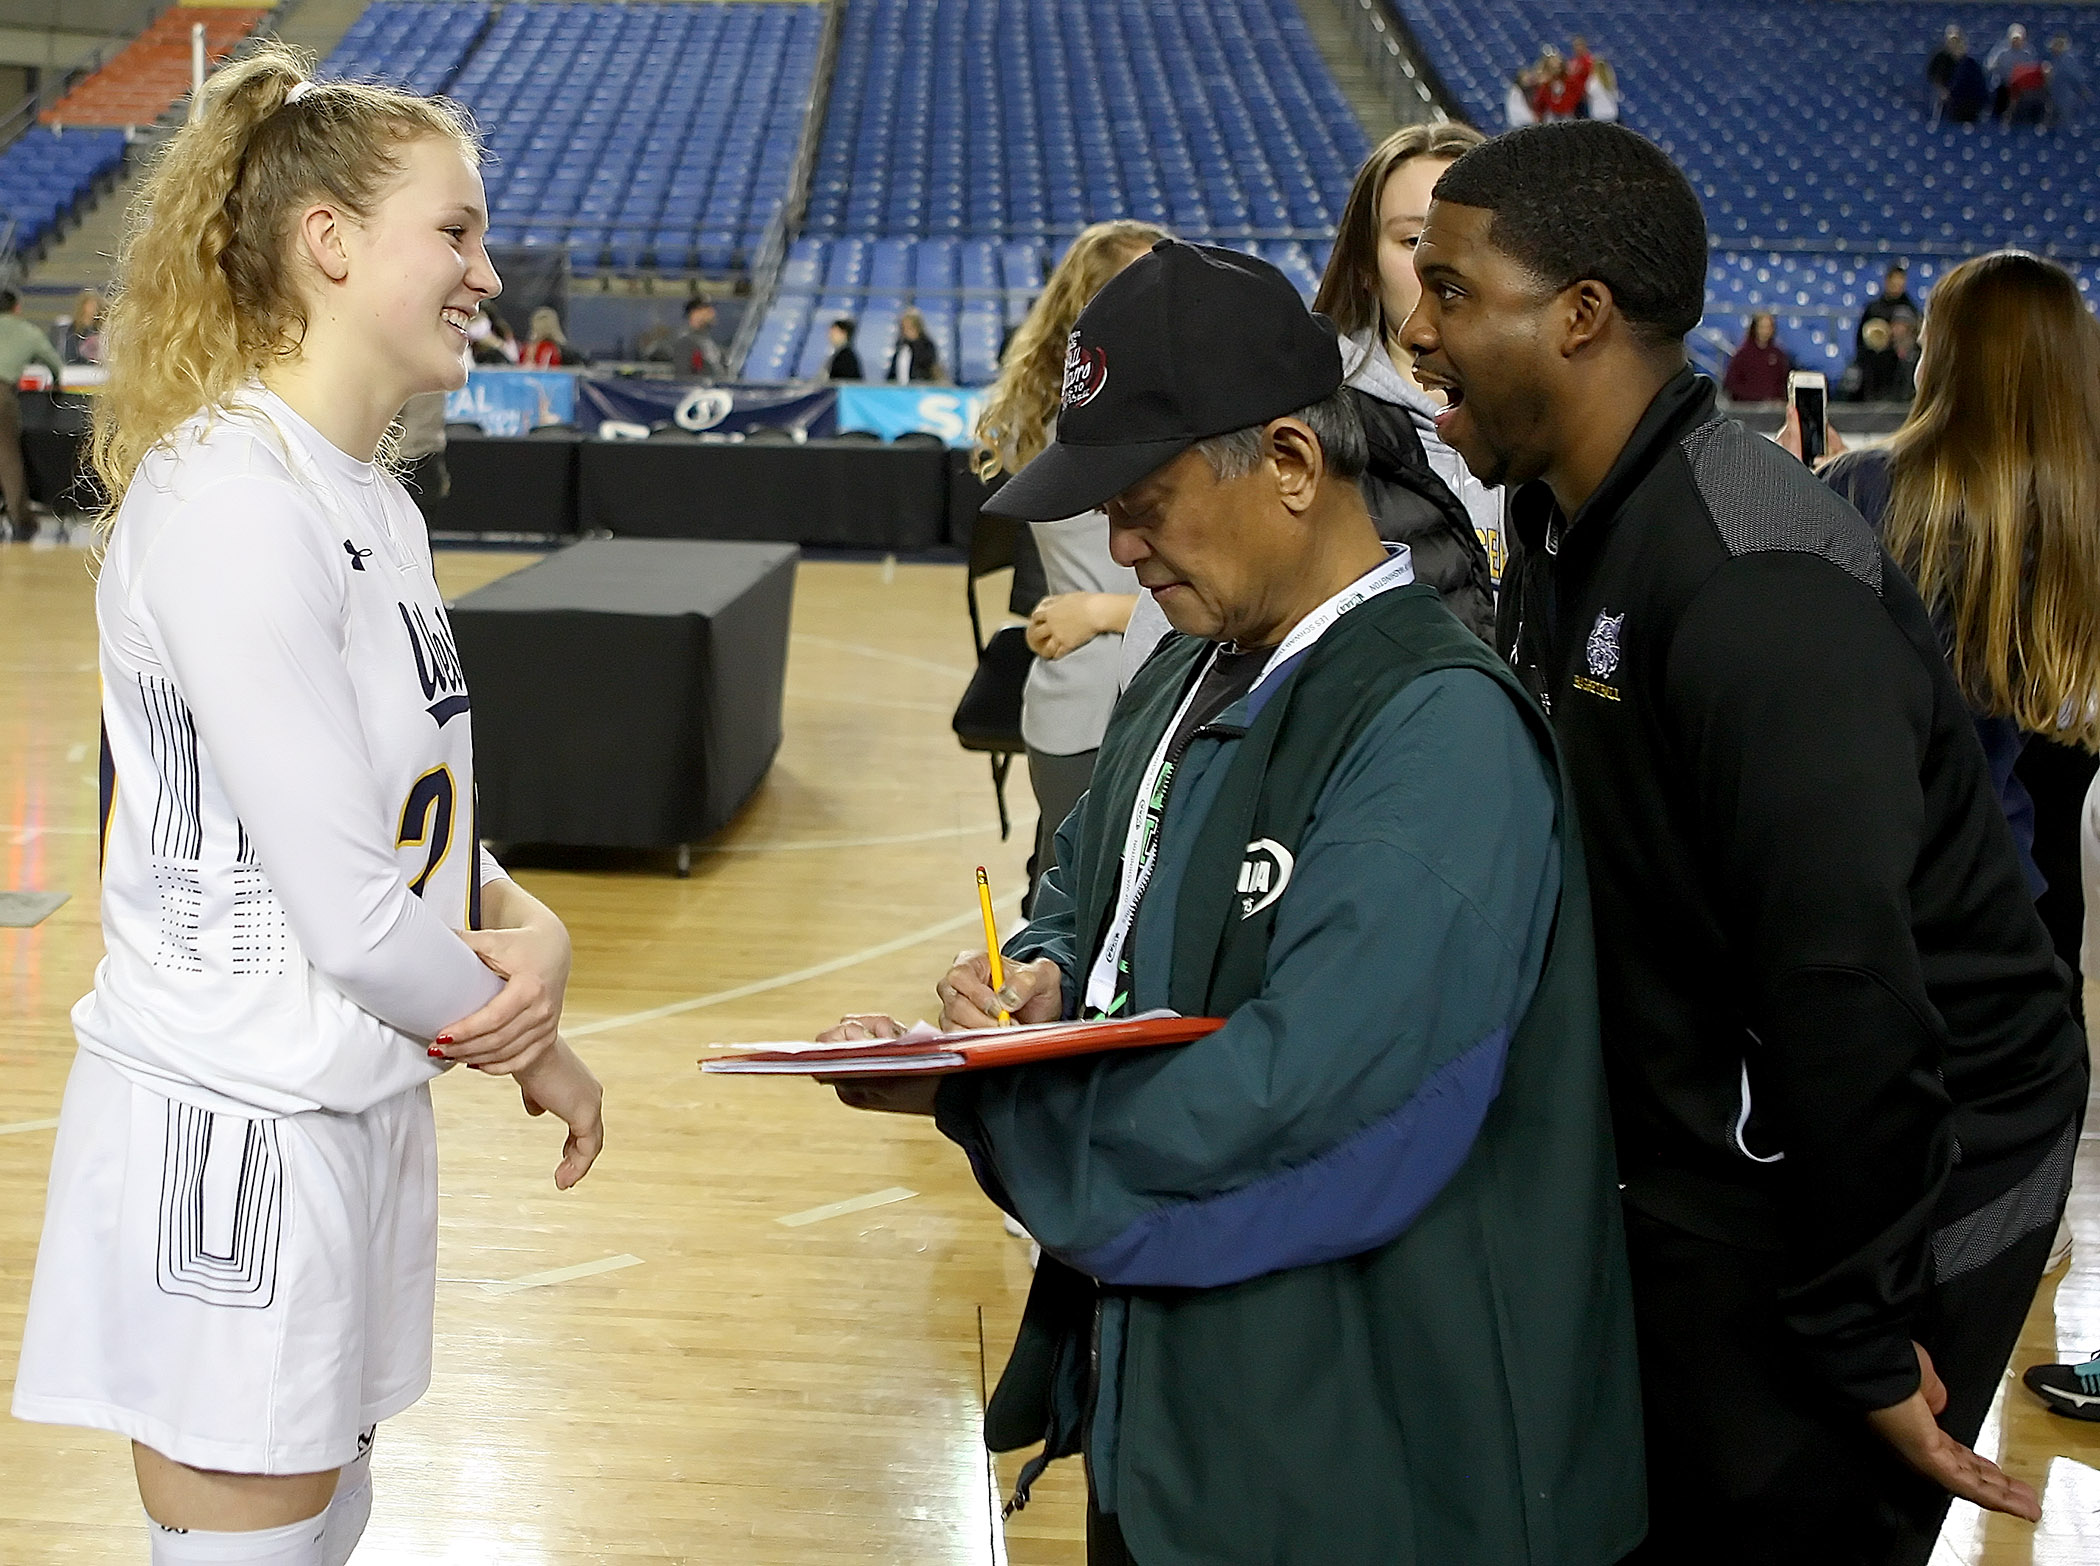 During an interview with West Seattle's Grace Sarver, coach Darnell Taylor jokingly harasses her, as he hides behind Westside Seattle's sports writer, Gerardo Bolong.